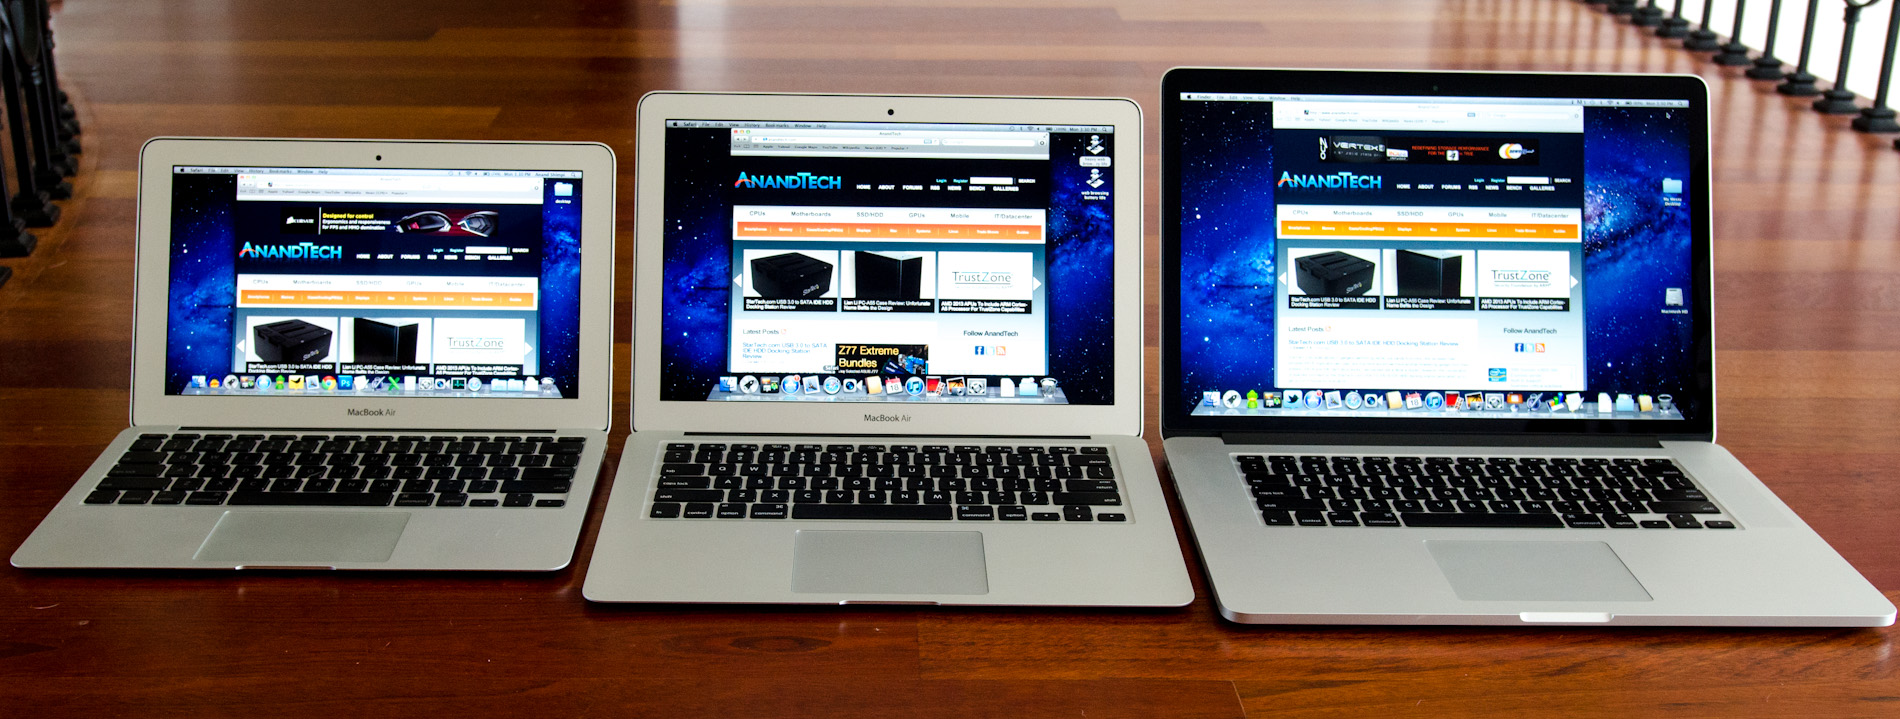 Macbook Air or Pro?